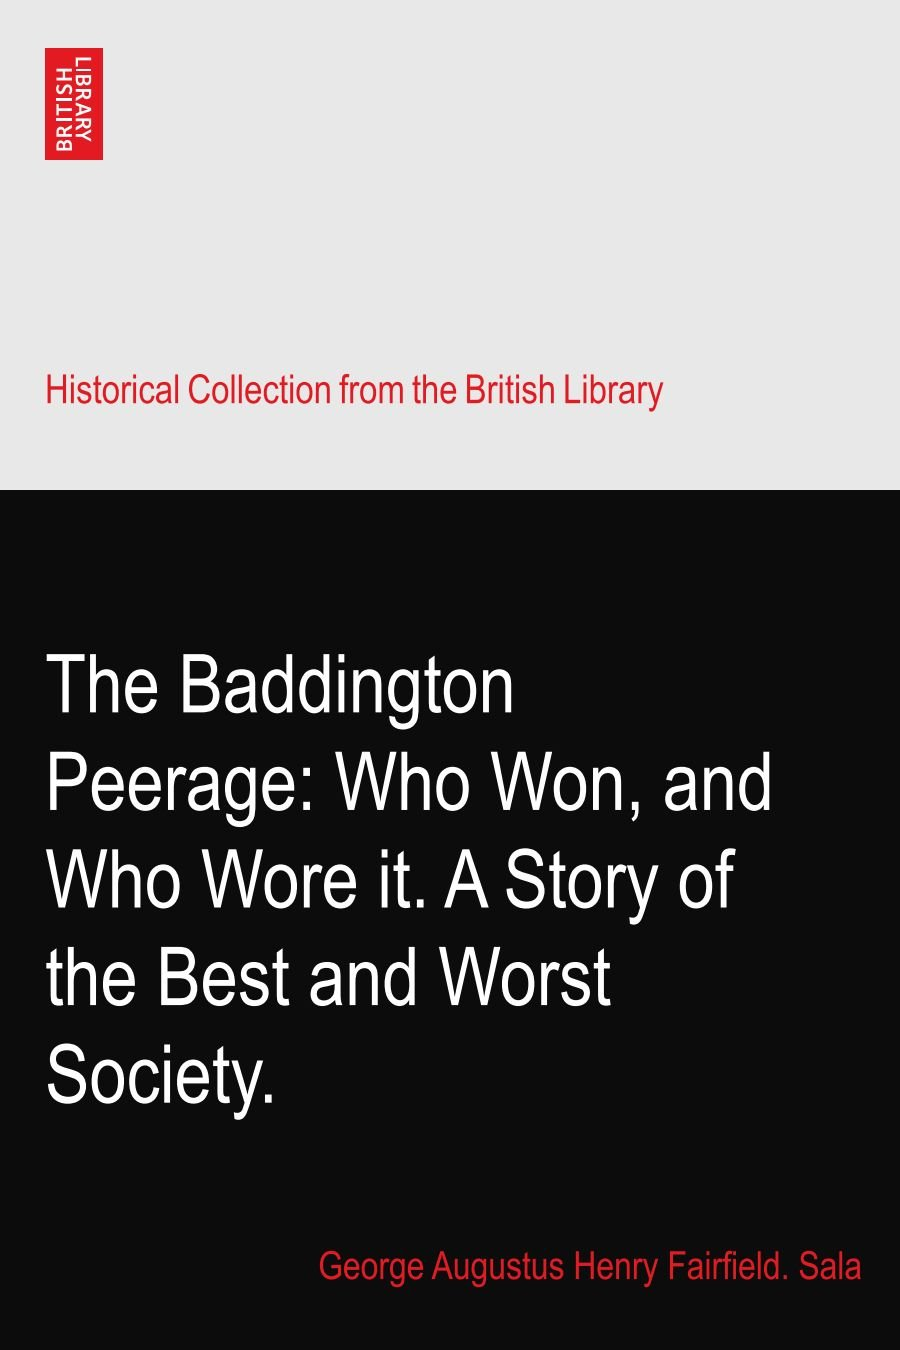 Download The Baddington Peerage: Who Won, and Who Wore it. A Story of the Best and Worst Society. PDF